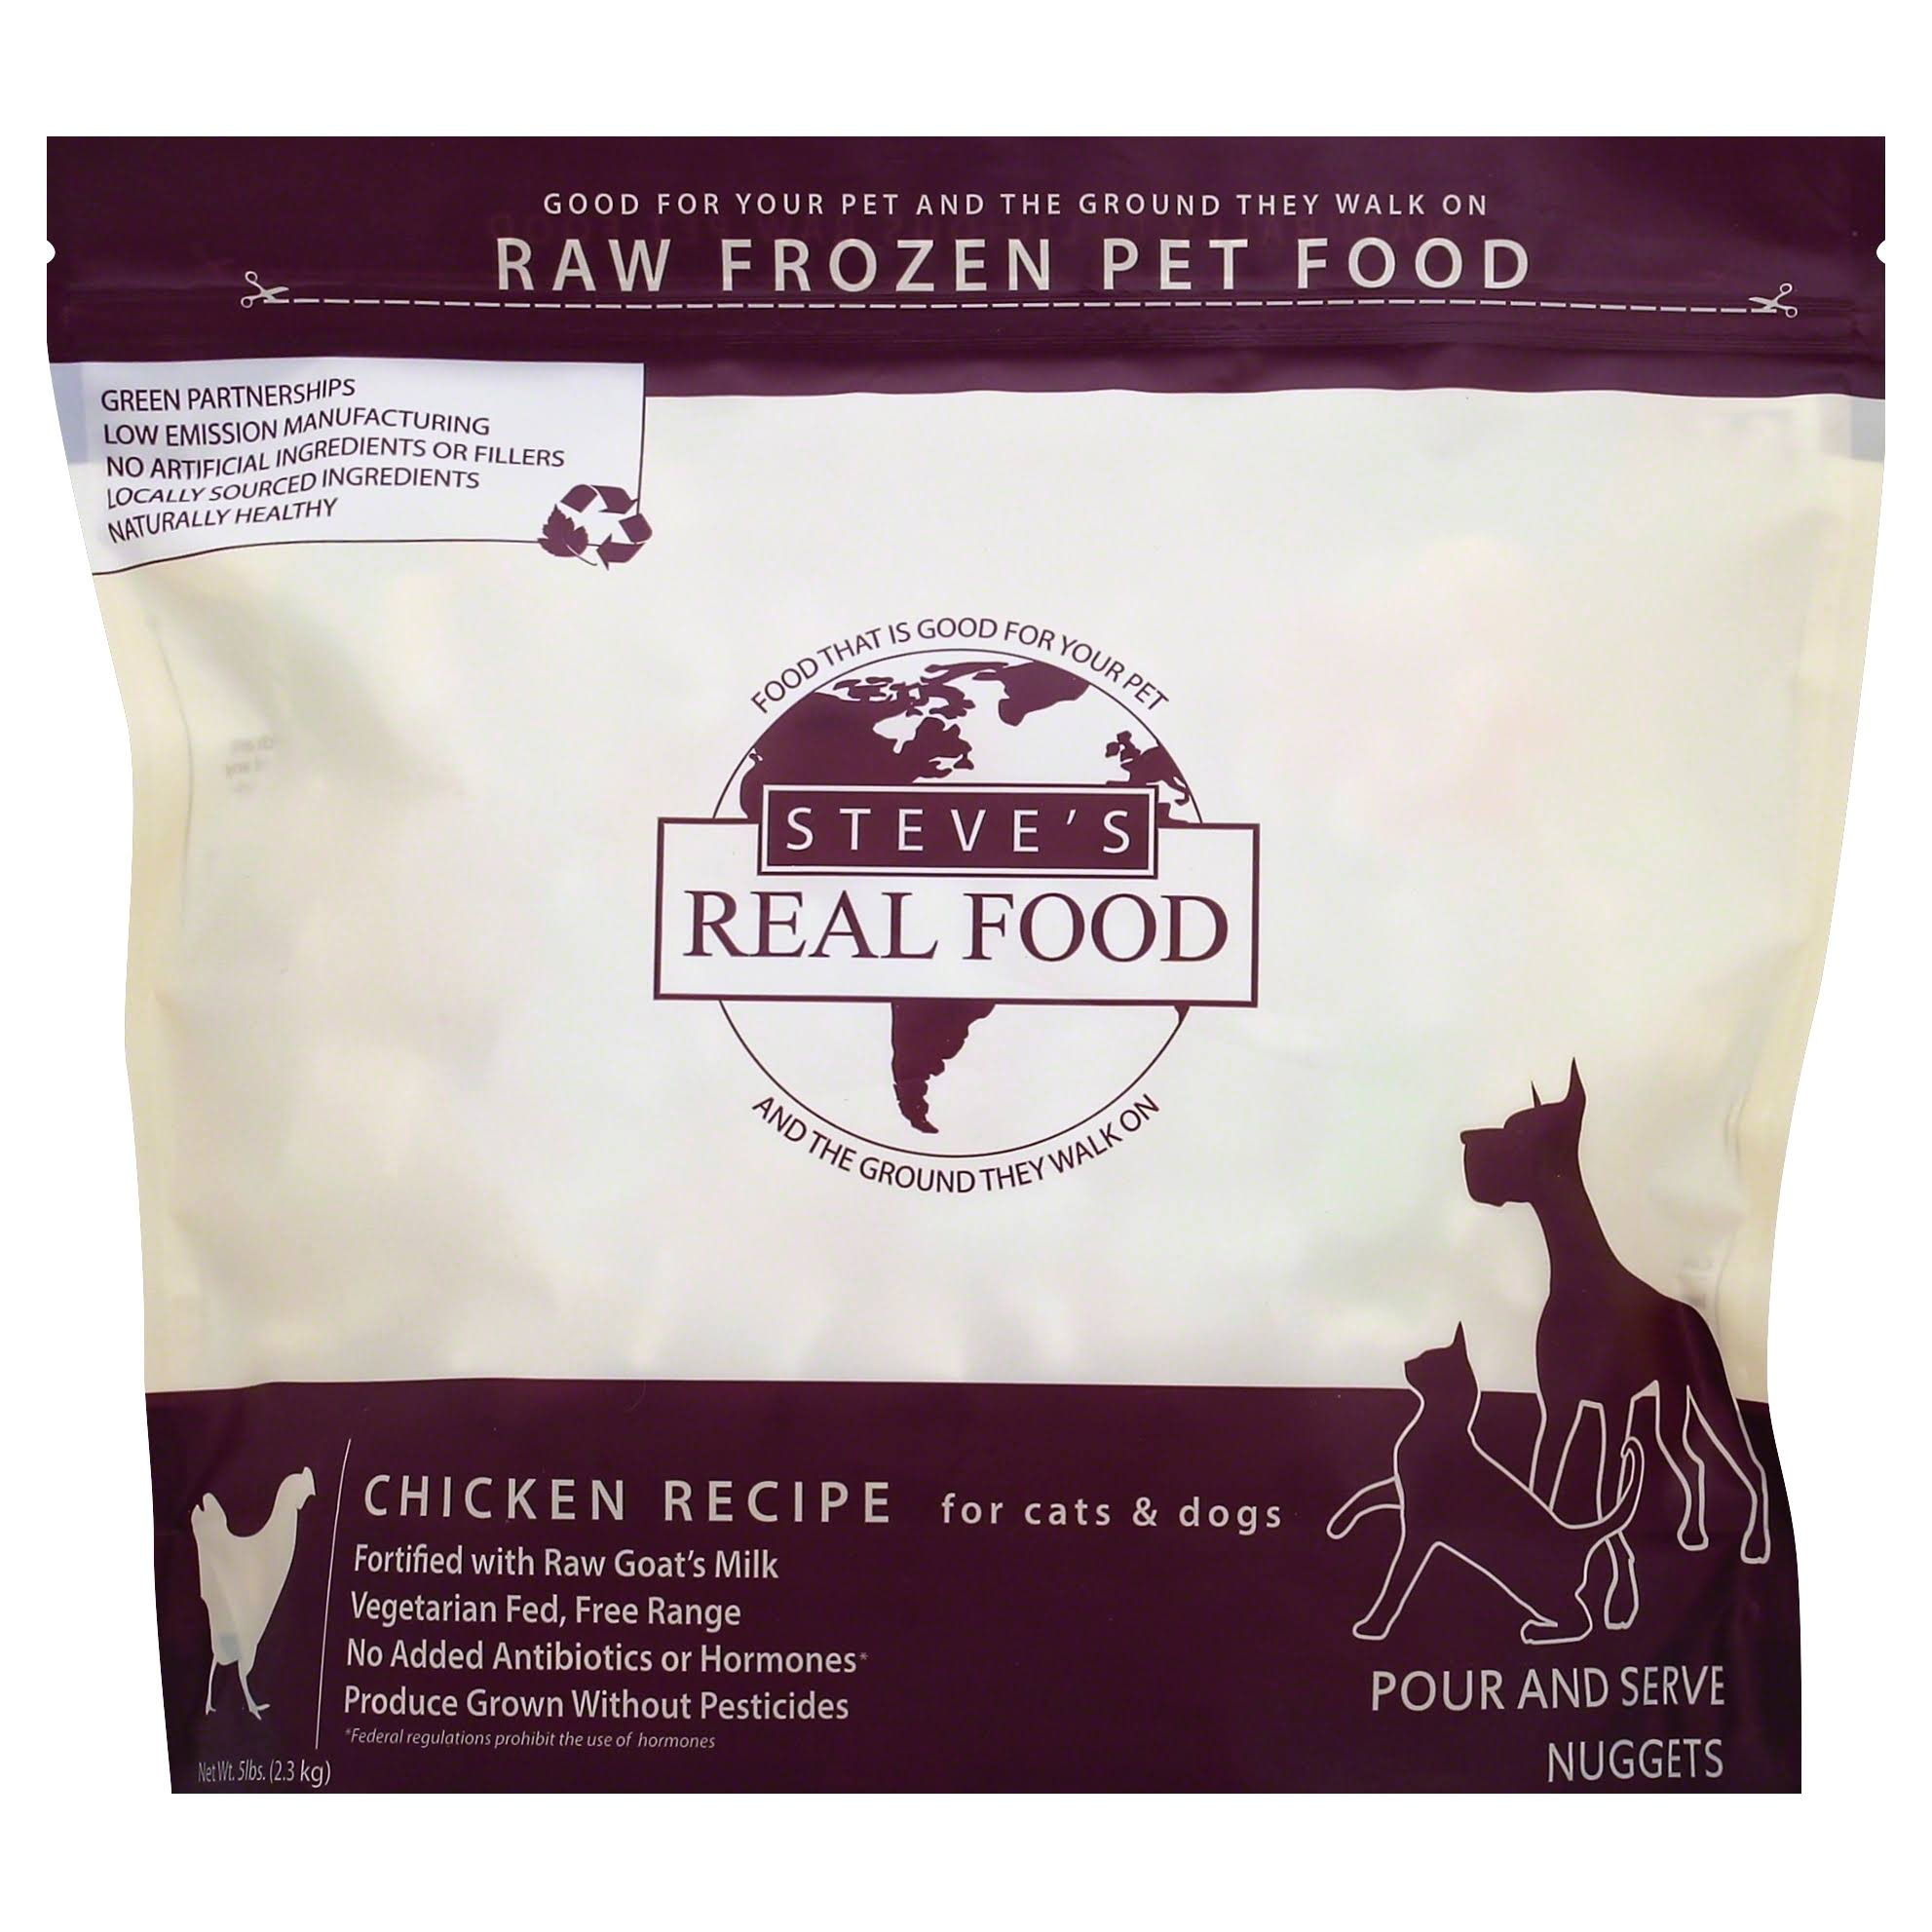 Steves Real Food Pet Food, Raw Frozen, Chicken Recipe, Pour and Serve Nuggets - 5 lb